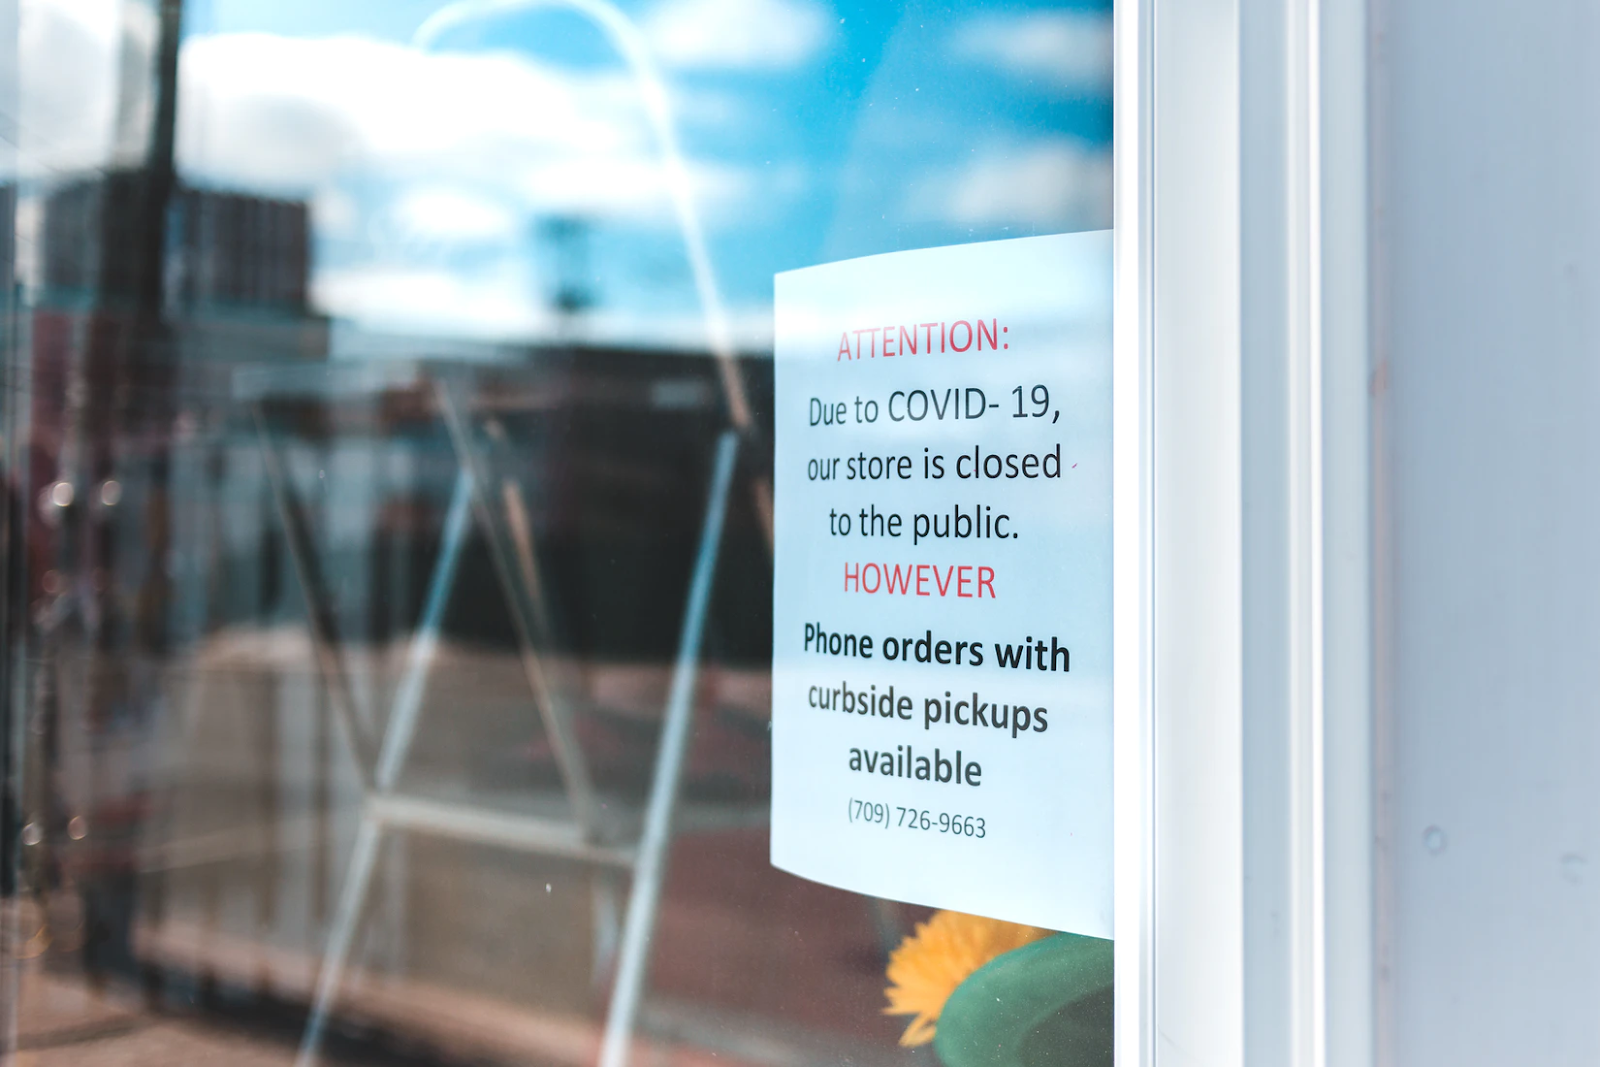 """An image of a flyer in a store window that reads """"Attention: due to COVID-19, our store is closed to the public. HOWEVER, phone orders with curbside pickups available."""""""